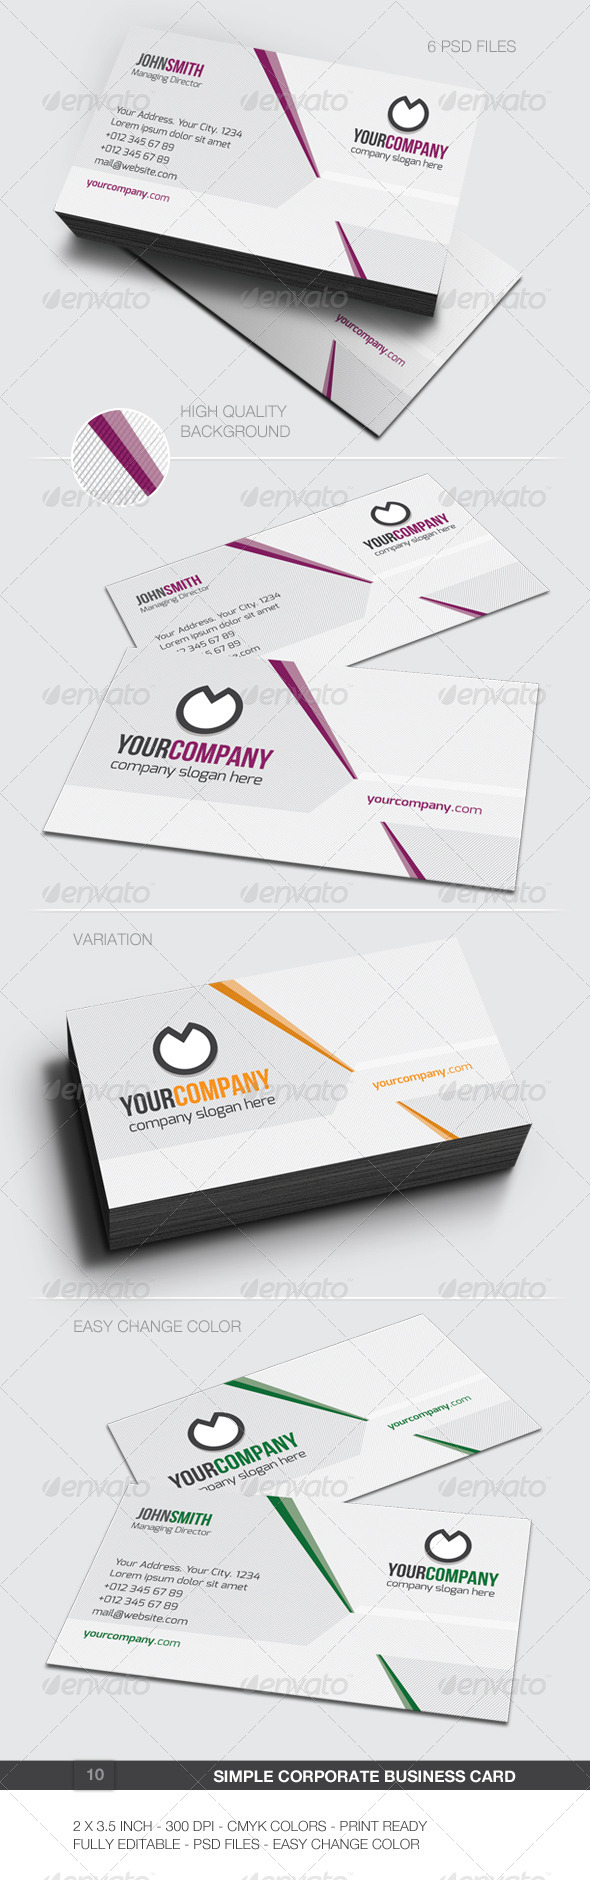 Simple Corporate Business Card - 10 - Corporate Business Cards